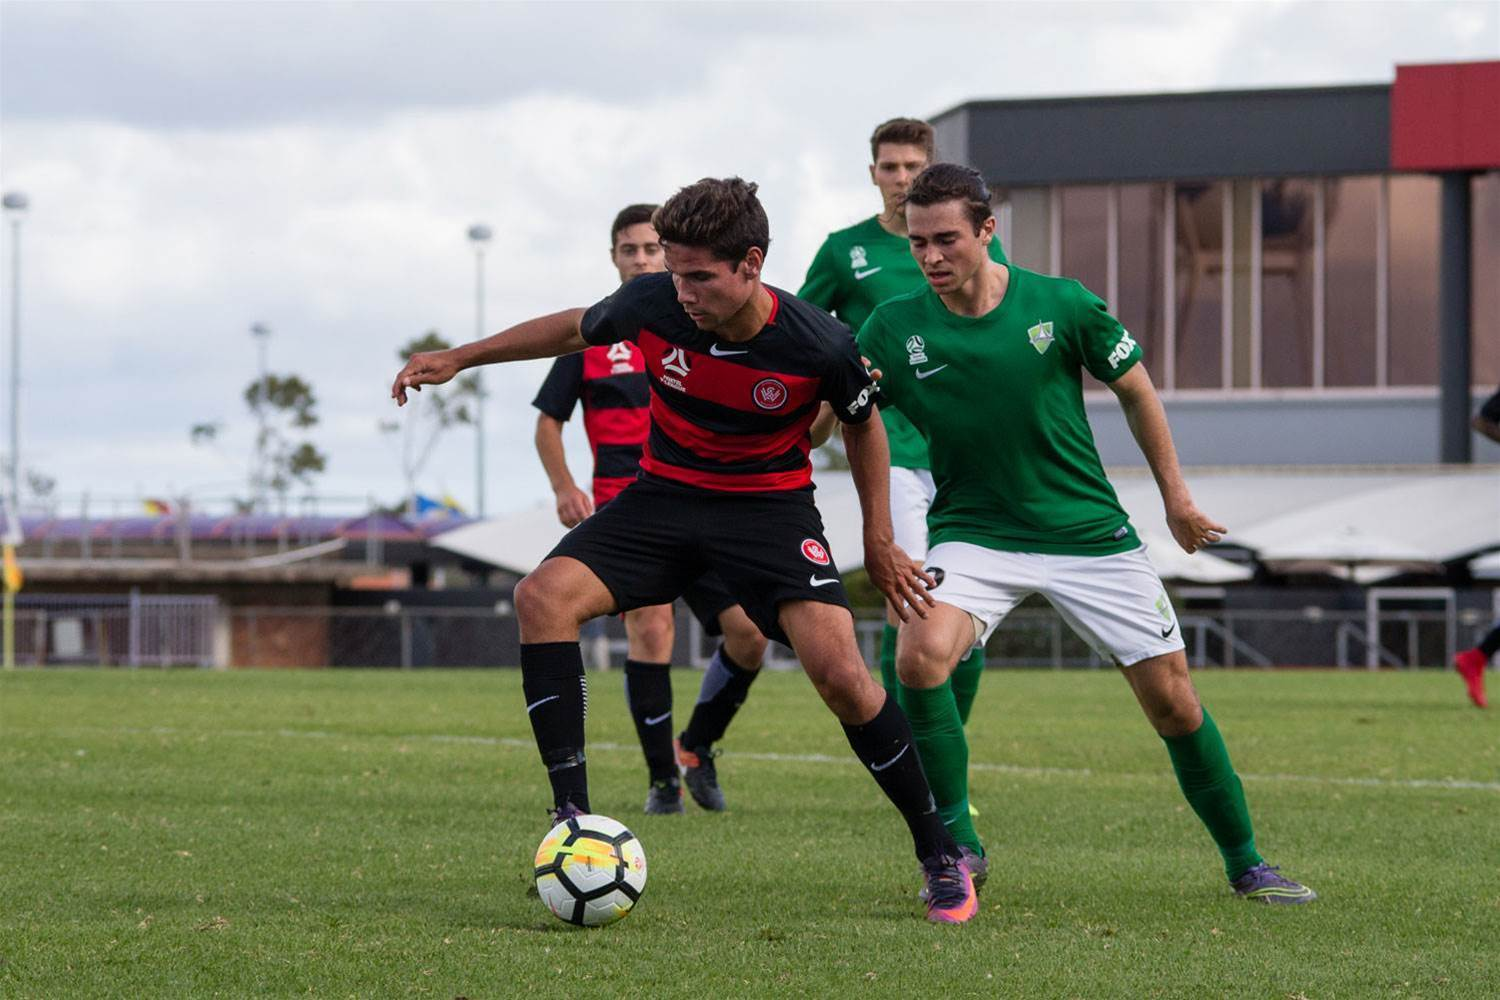 Youth League pic special: Western Sydney Wanderers v Canberra United